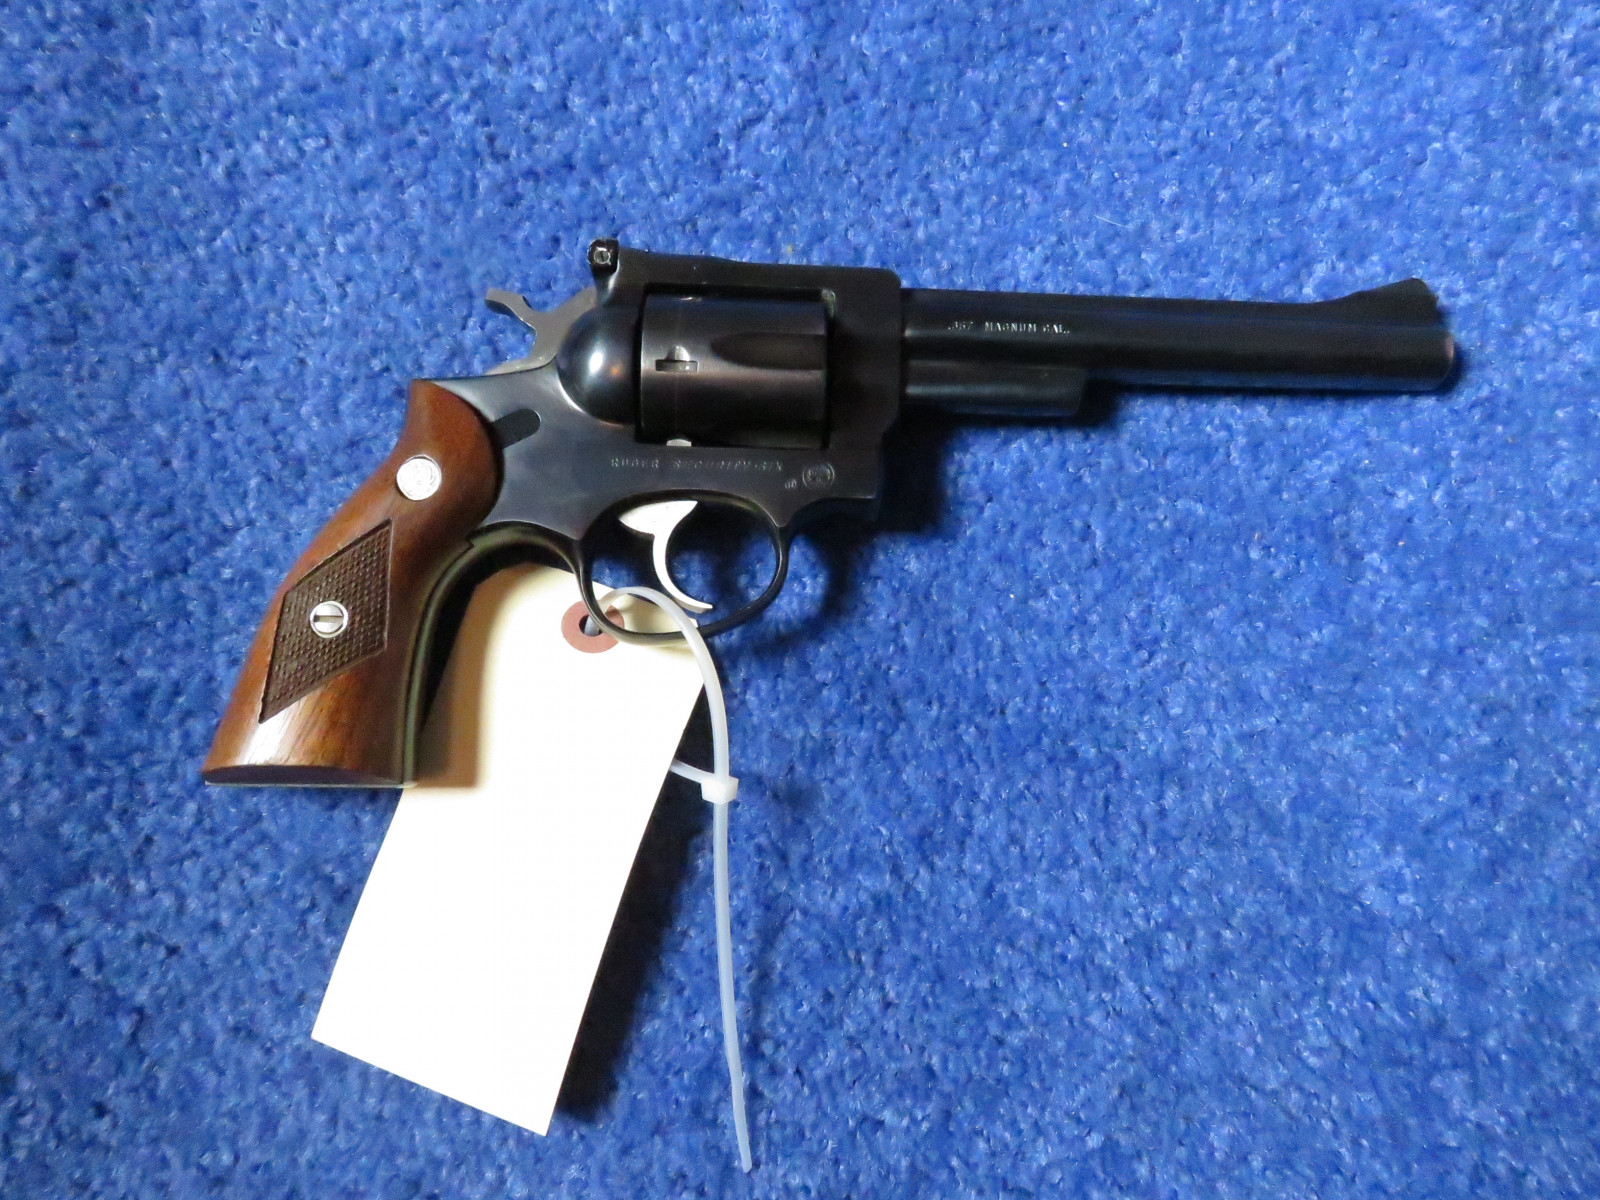 Ruger Security 6 .357 Magnum Revolver - Image 3